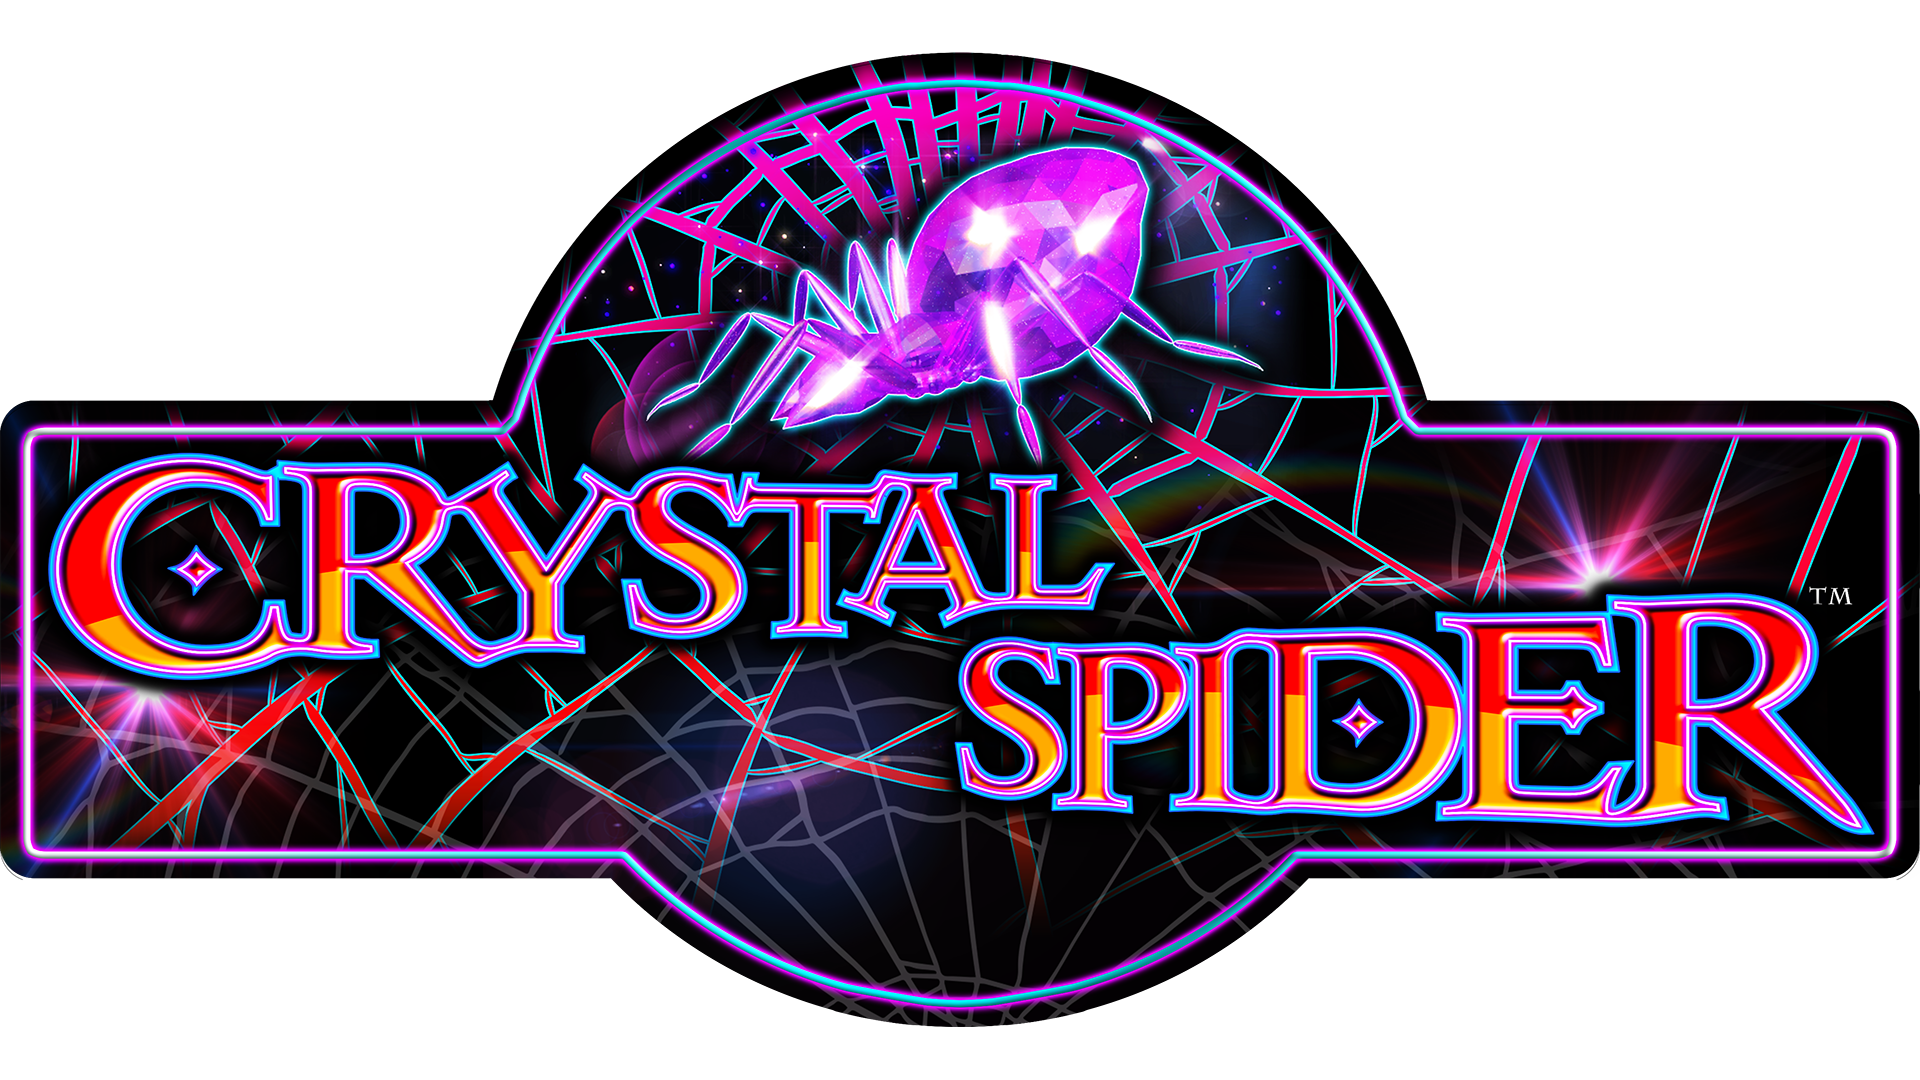 Crystal Spider™ - Top Glass